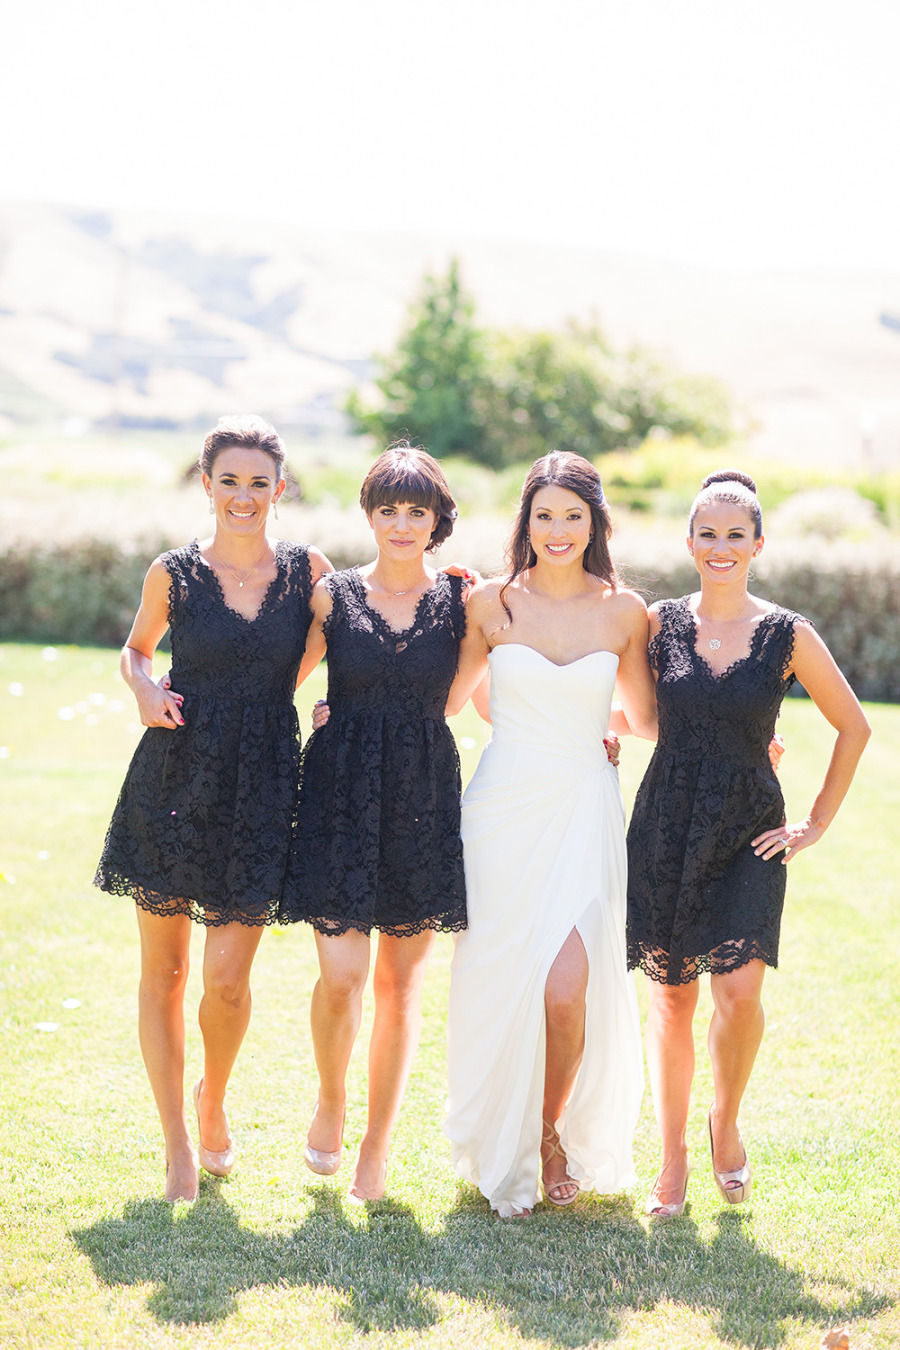 wedding-ideas-16-02182015-ky